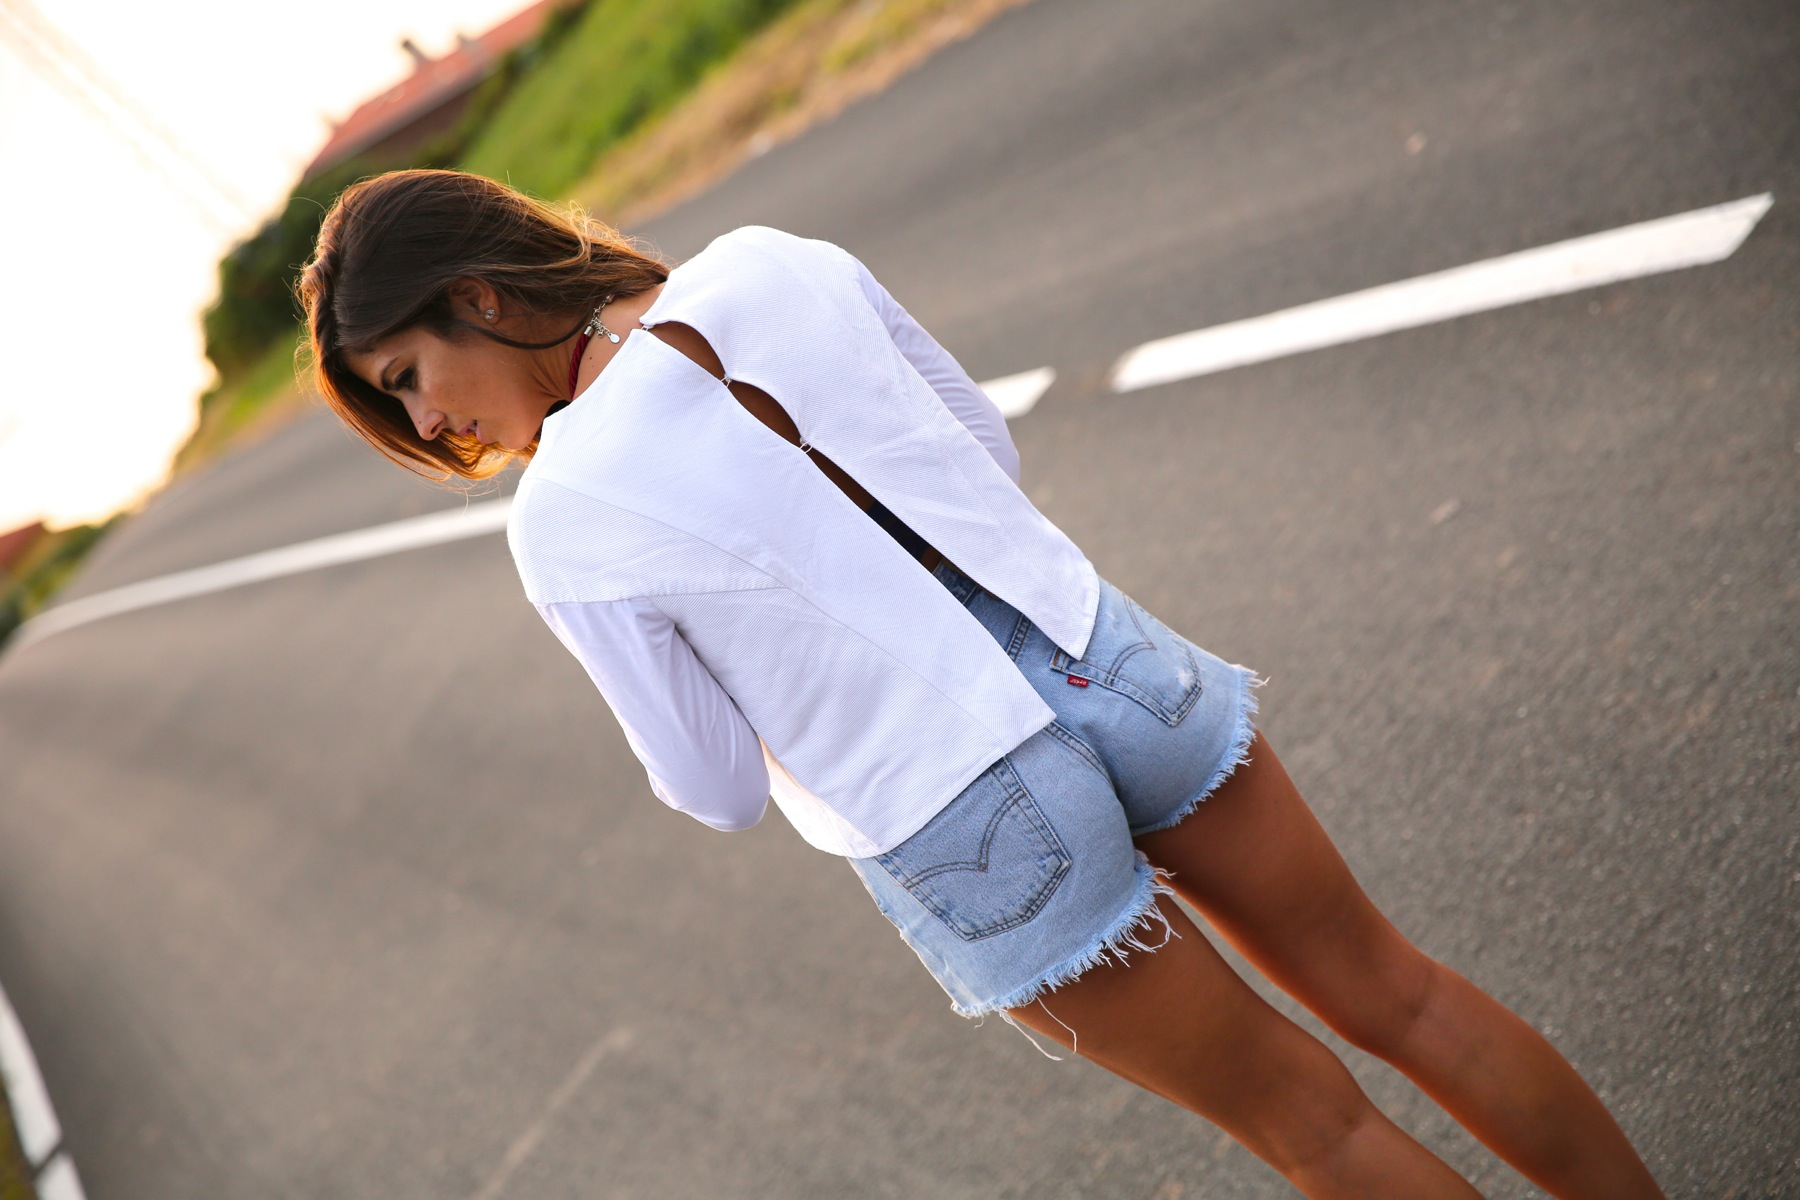 trendy_taste-look-outfit-street_style-ootd-blog-blogger-fashion_spain-moda_españa-coach-silver_sandals-sandalias_plata-white_top-top_blanco-levi's-denim_shorts-shorts_vaqueros-6